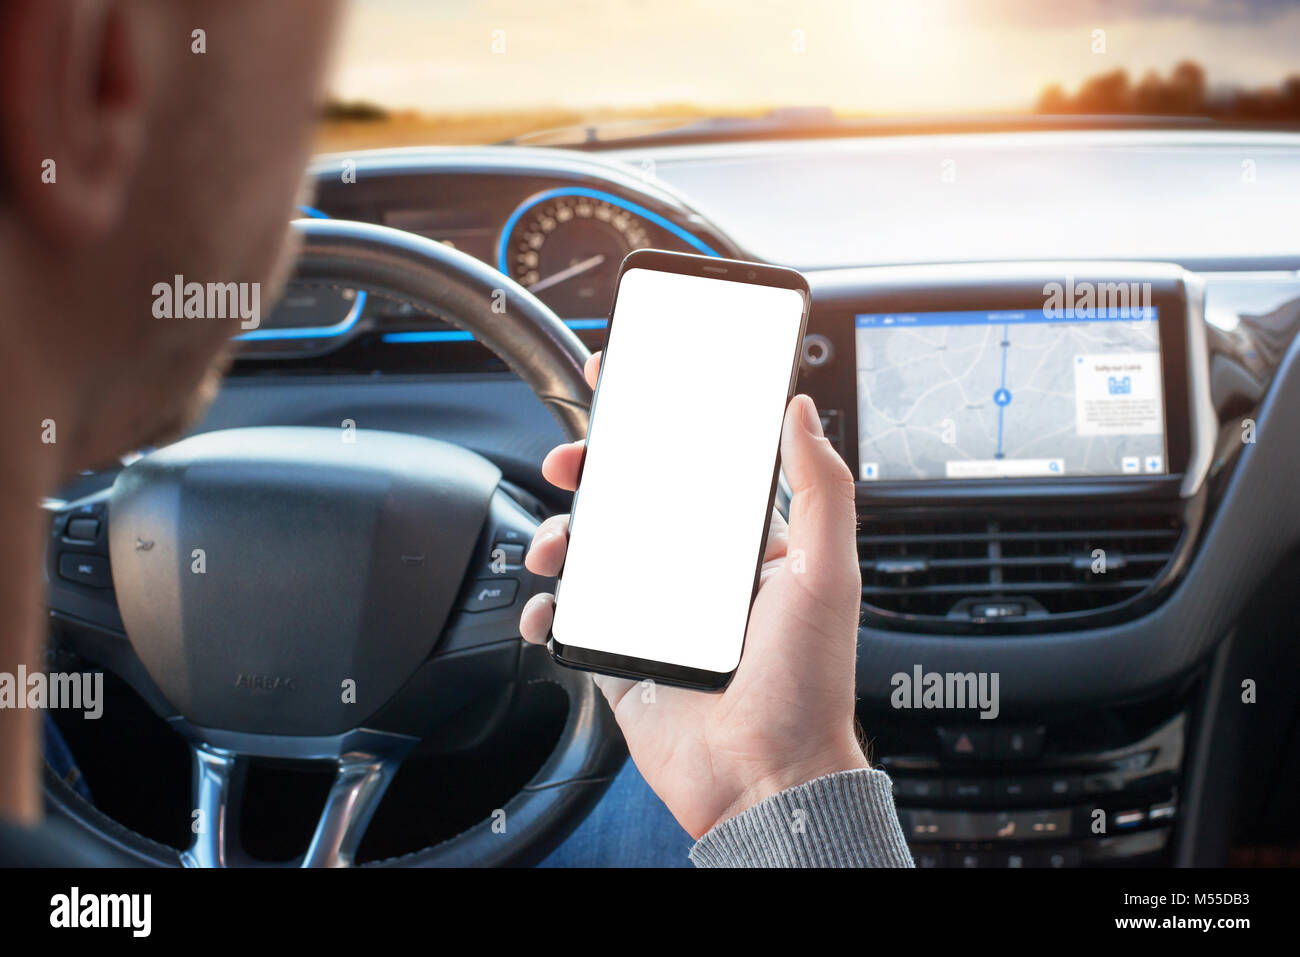 The driver uses the phone while driving. Modern smart phone with round edges. Isolated screen for mockup. Car navigation - Stock Image